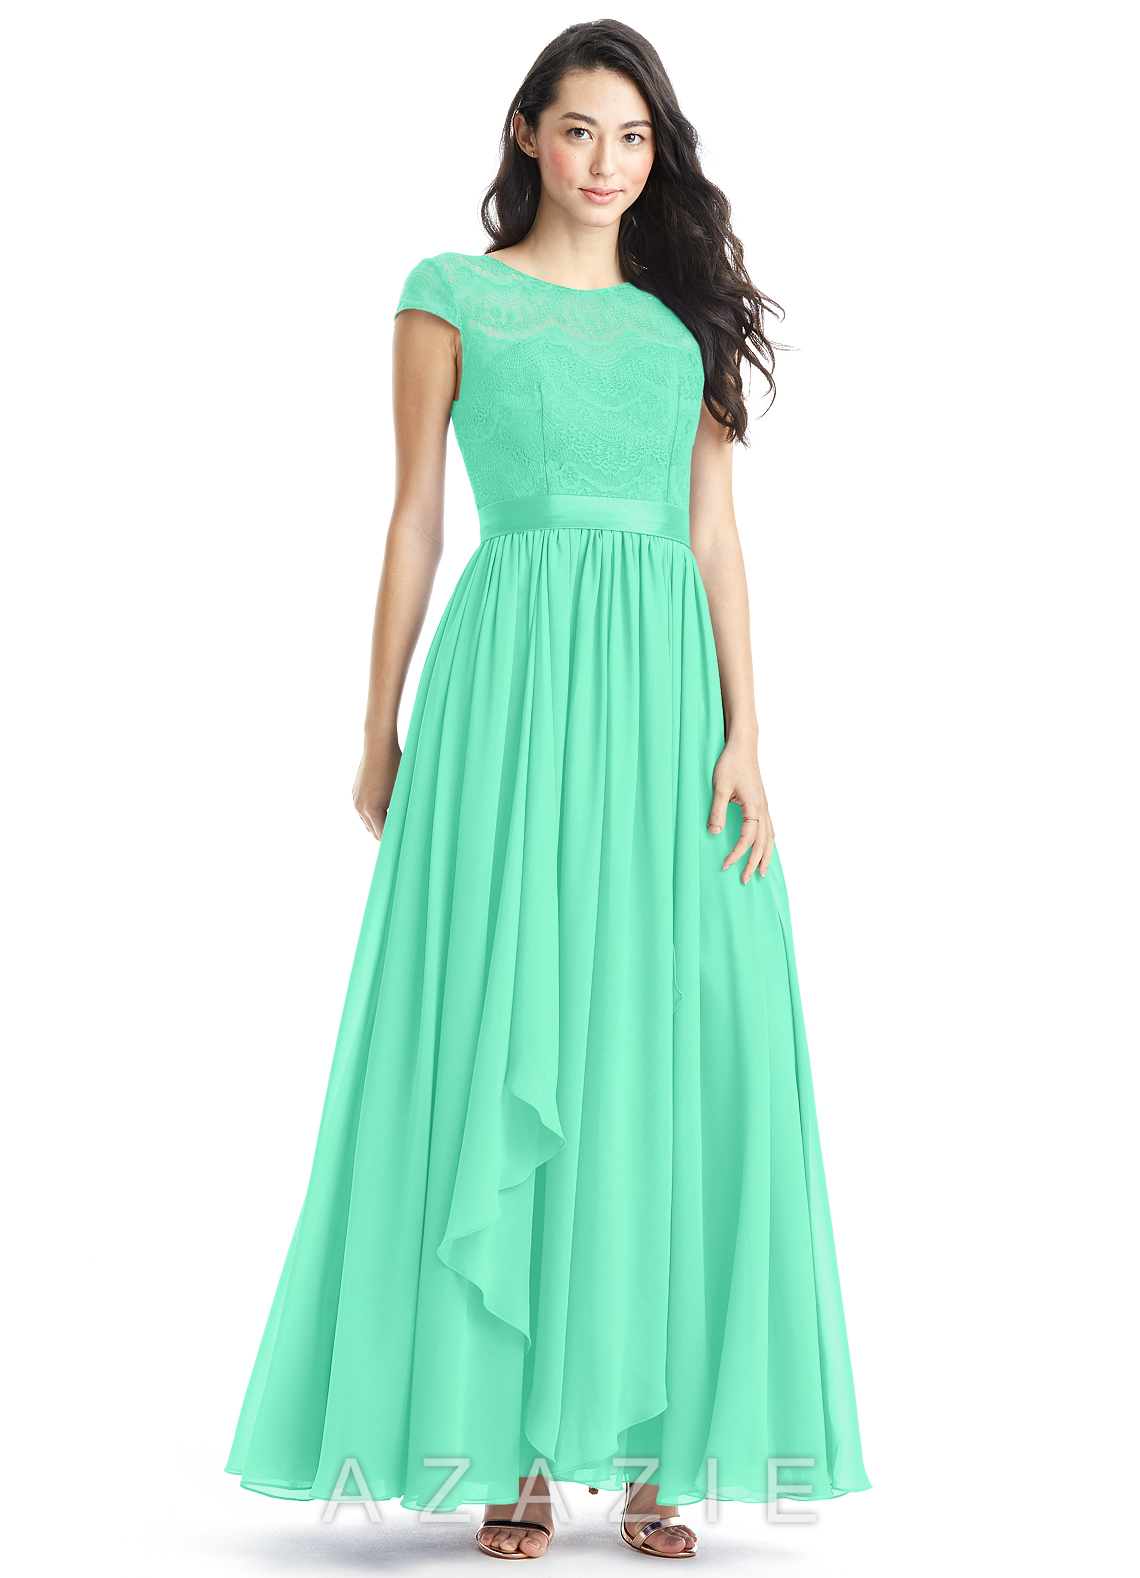 1af8e23a349 Azazie Beatrice Bridesmaid Dress - Turquoise